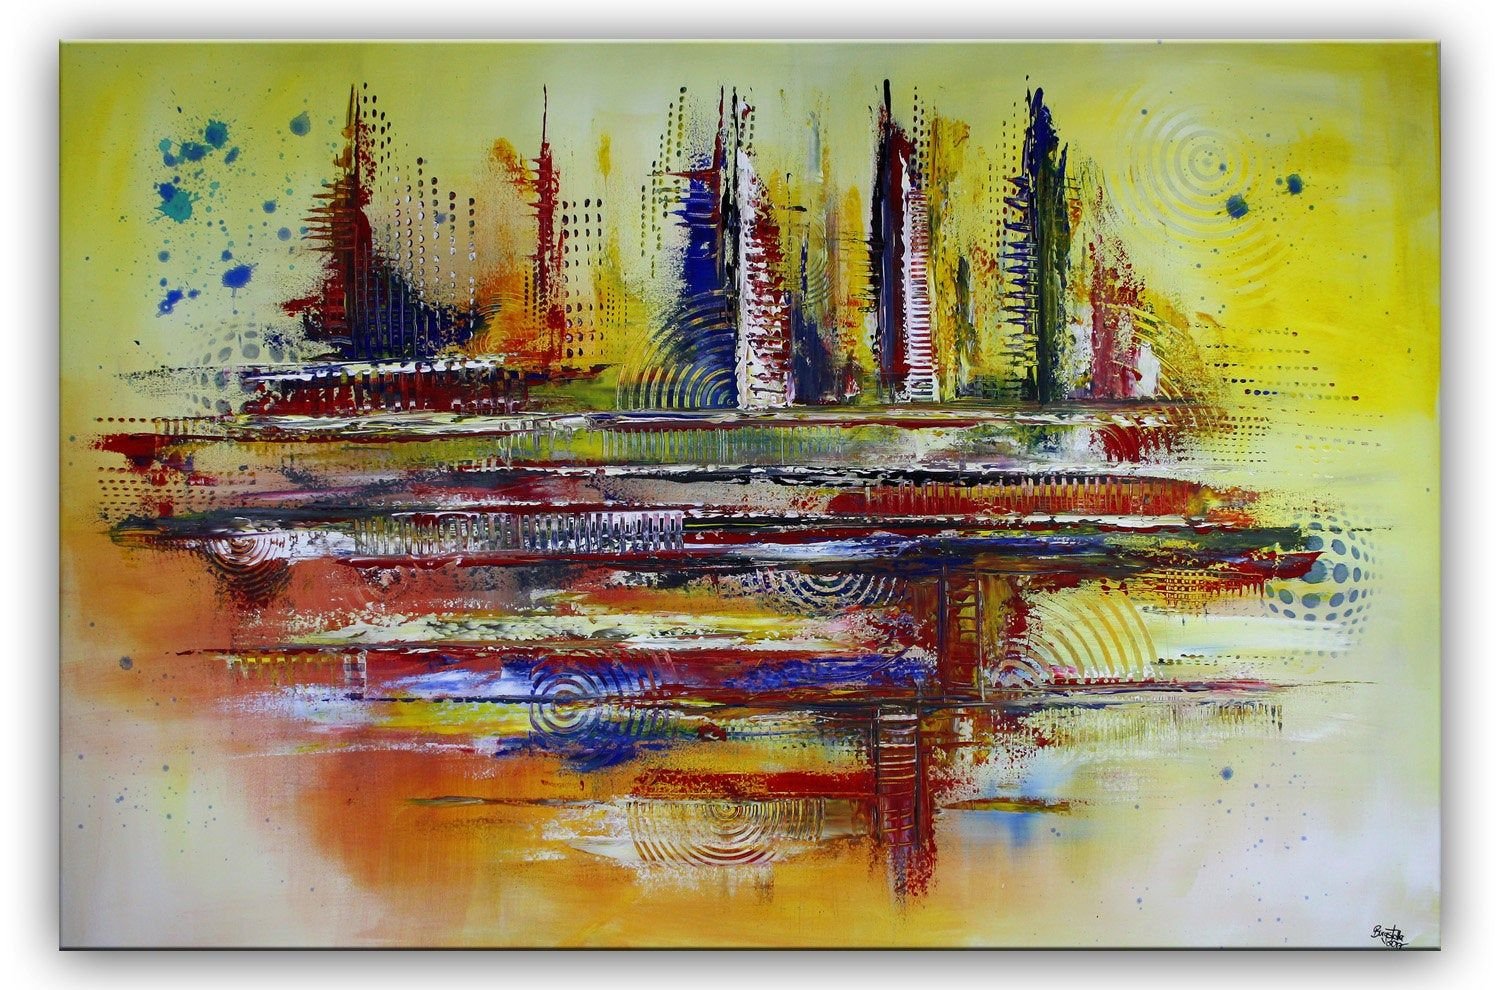 burgstaller orlando xxl abstract painting yellow colorful 90x130 modern mural hand painted acrylic buy pictures of art online poster design moderne künstler 2019 malerei